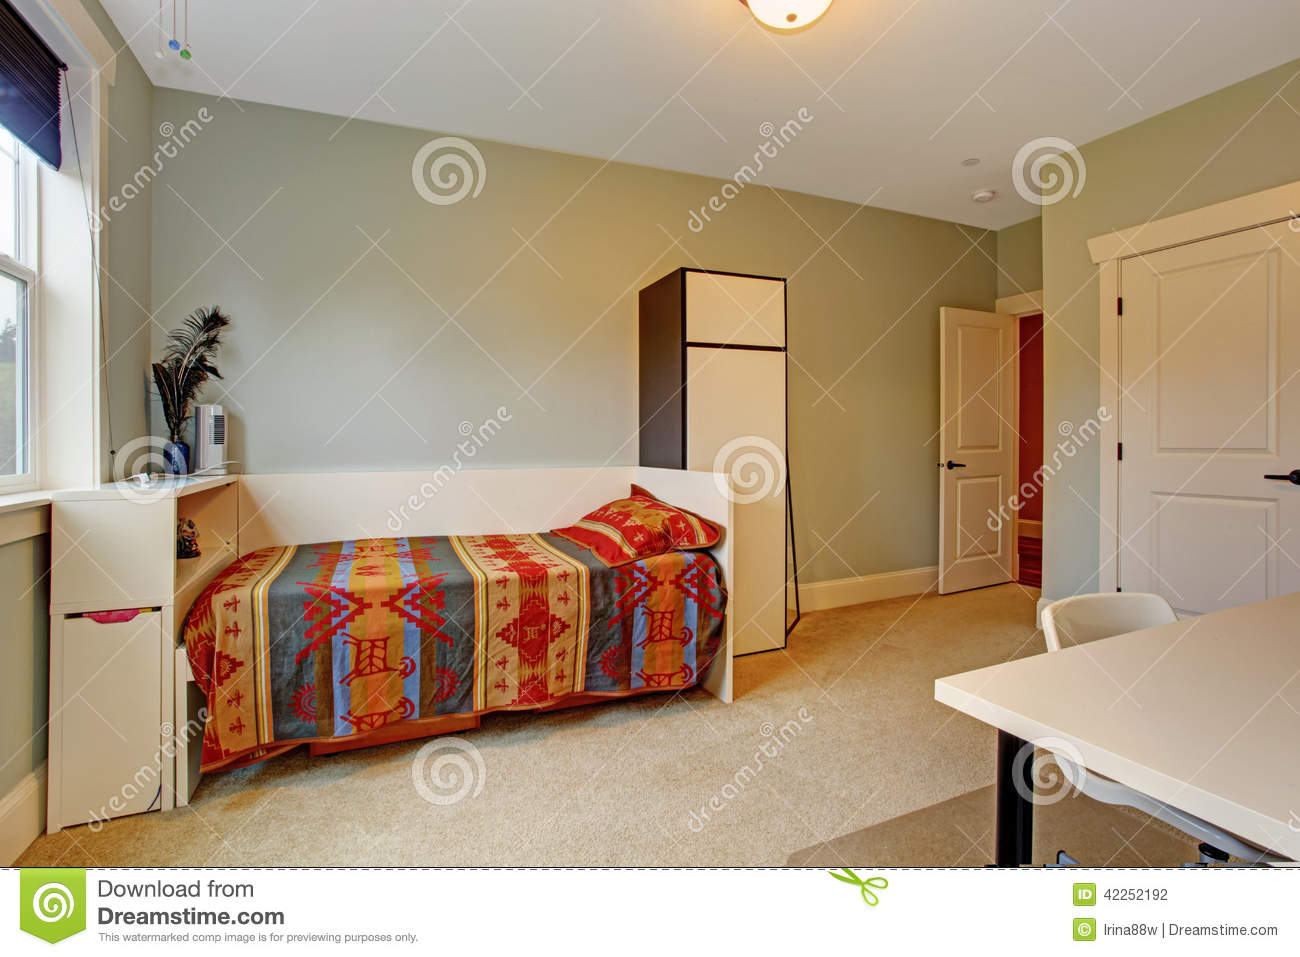 Simple bedroom interior with single bed stock photo for Simple single